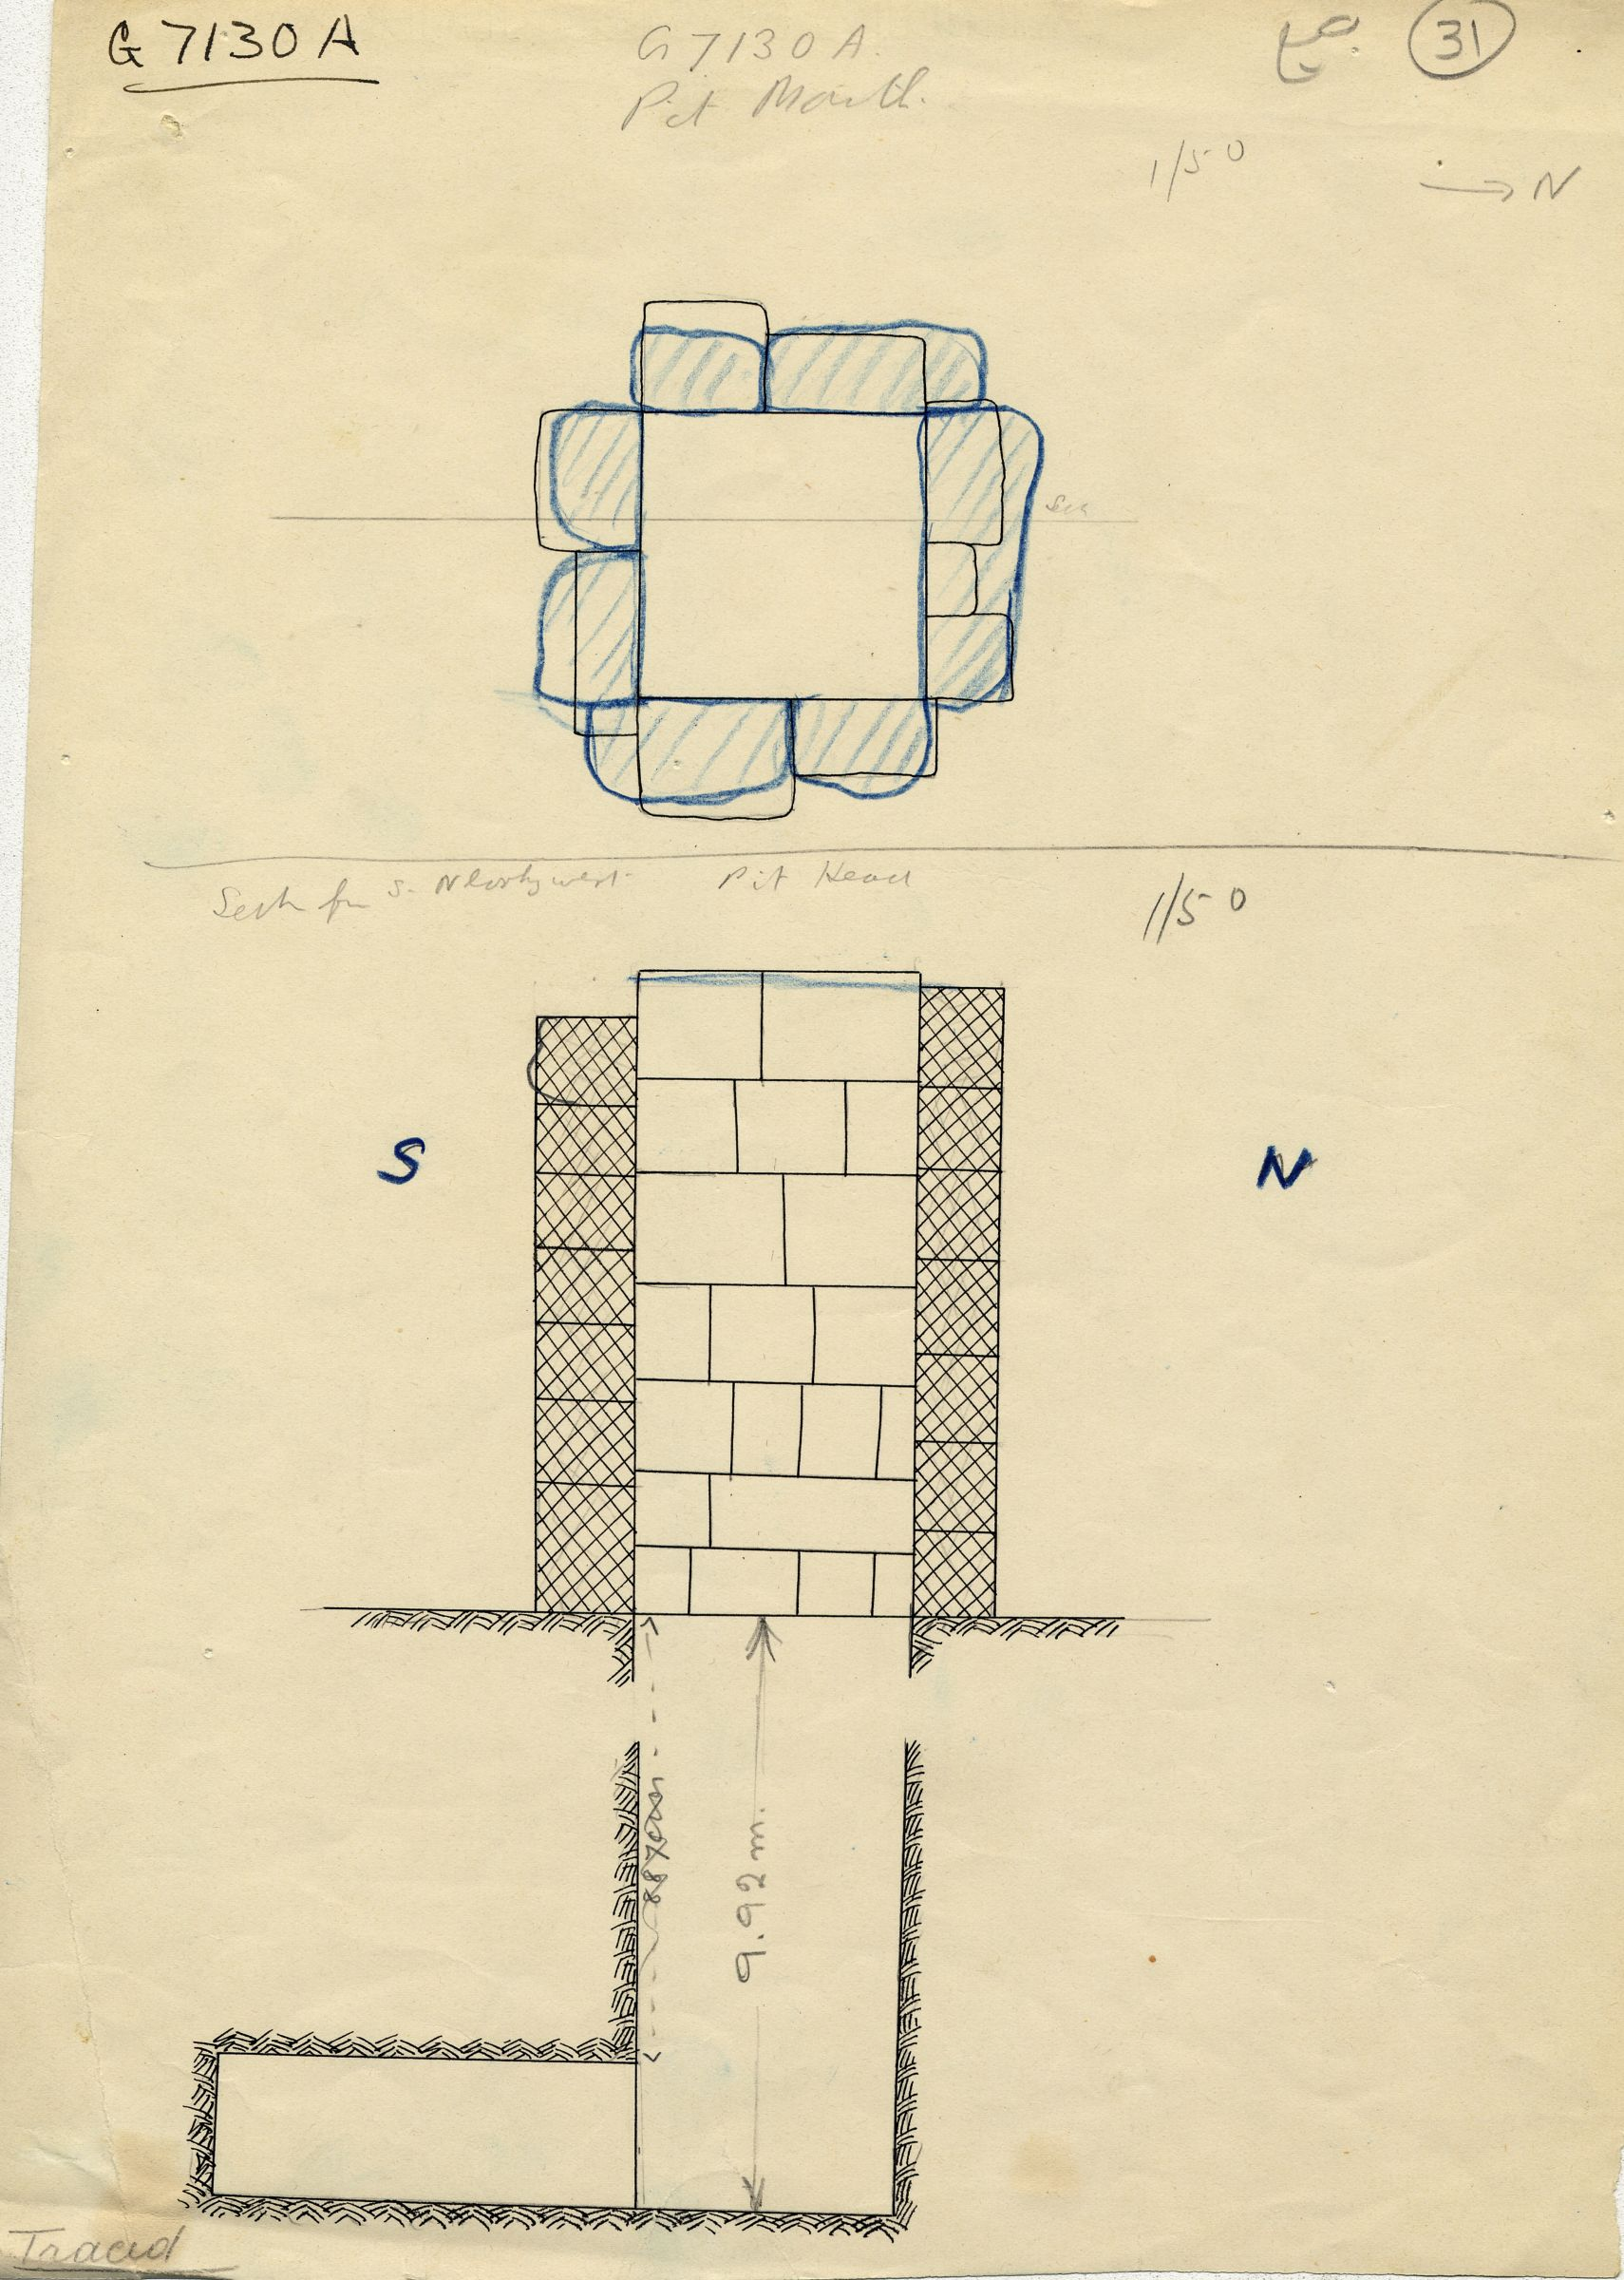 Maps and plans: G 7130-7140: G 7130, Shaft A